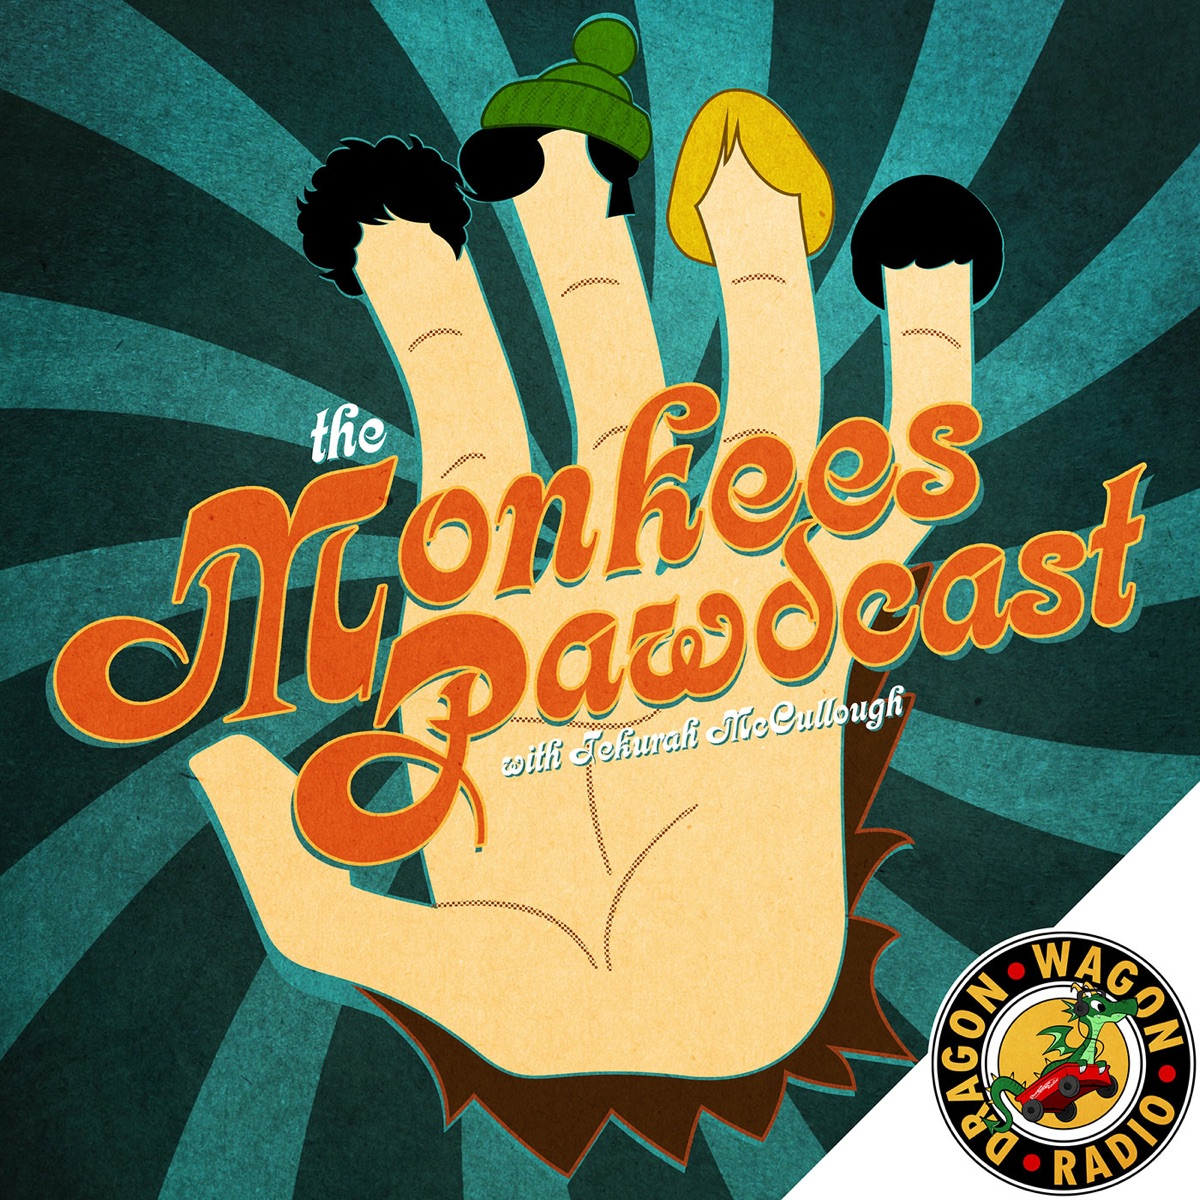 The Monkees Pawdcast